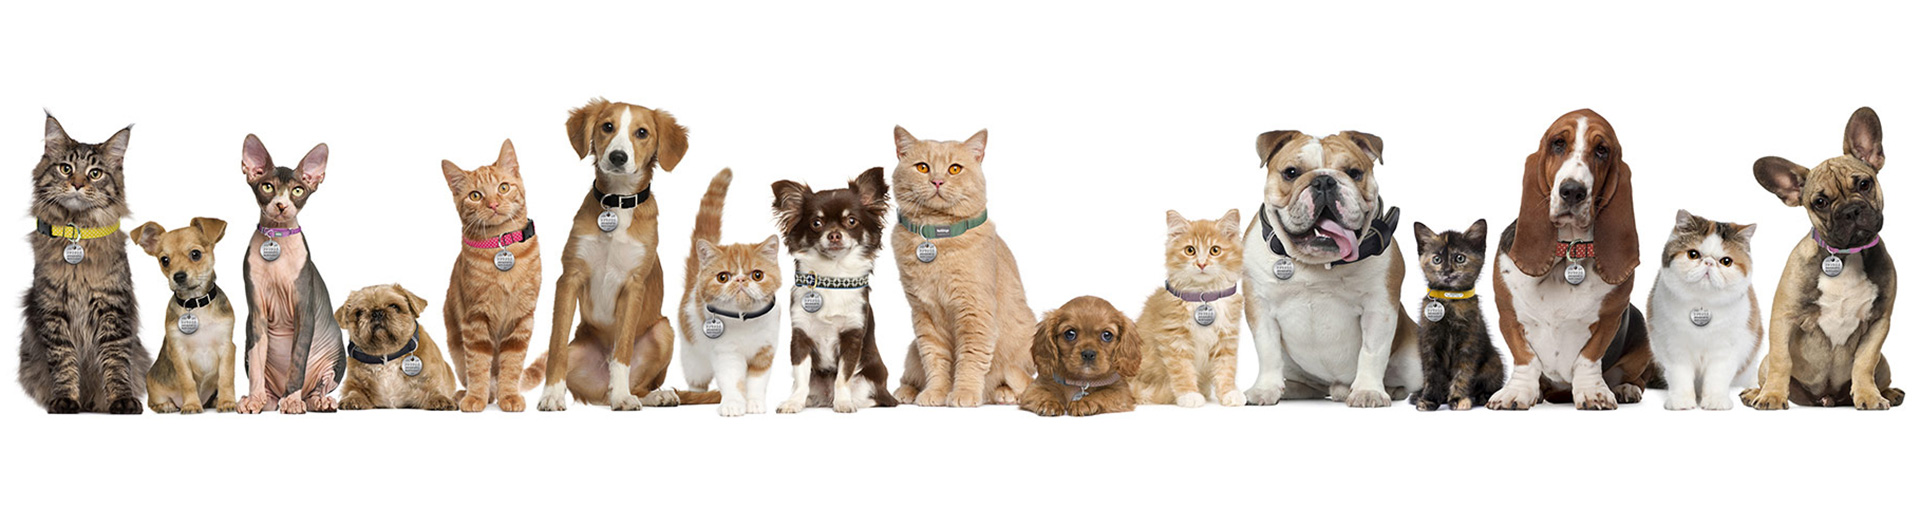 pets-lineup-xlg